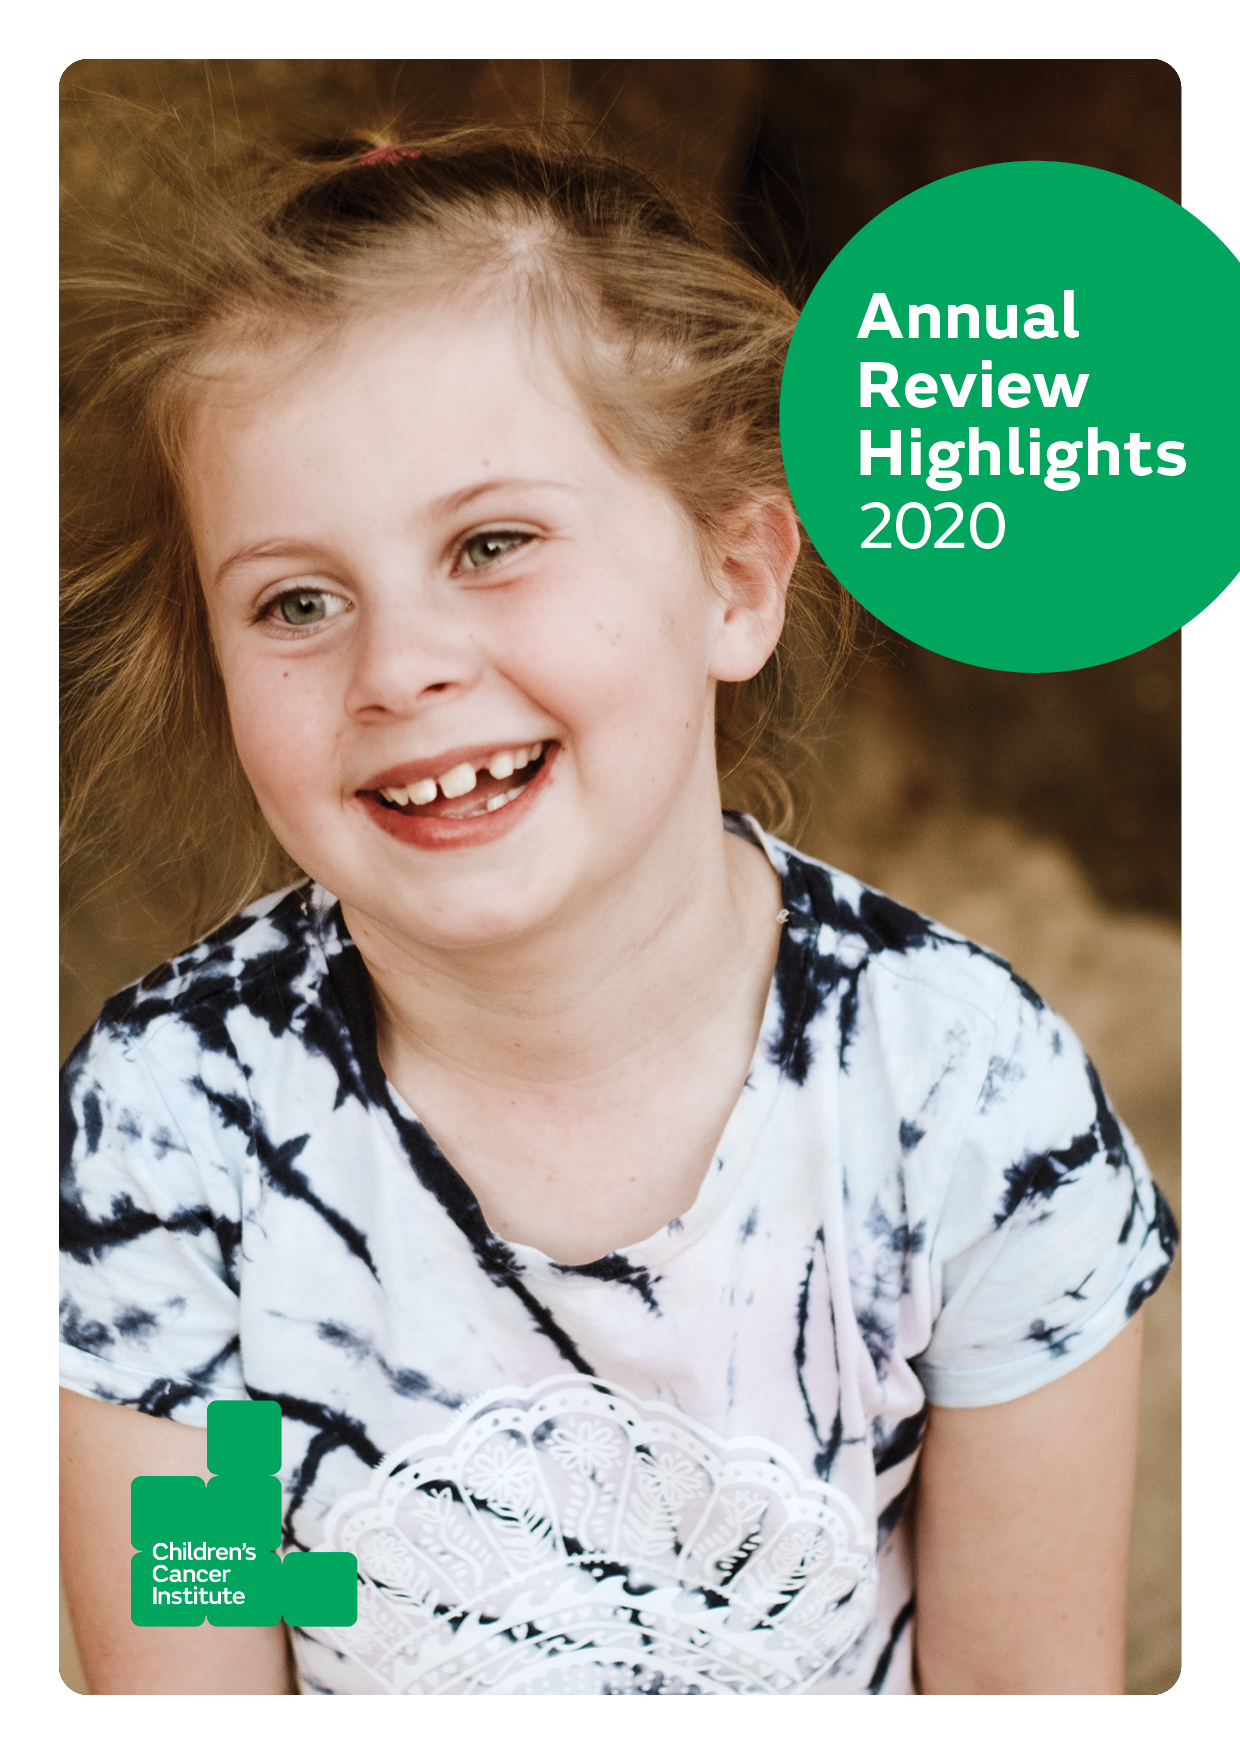 Annual Review Highlights 2020